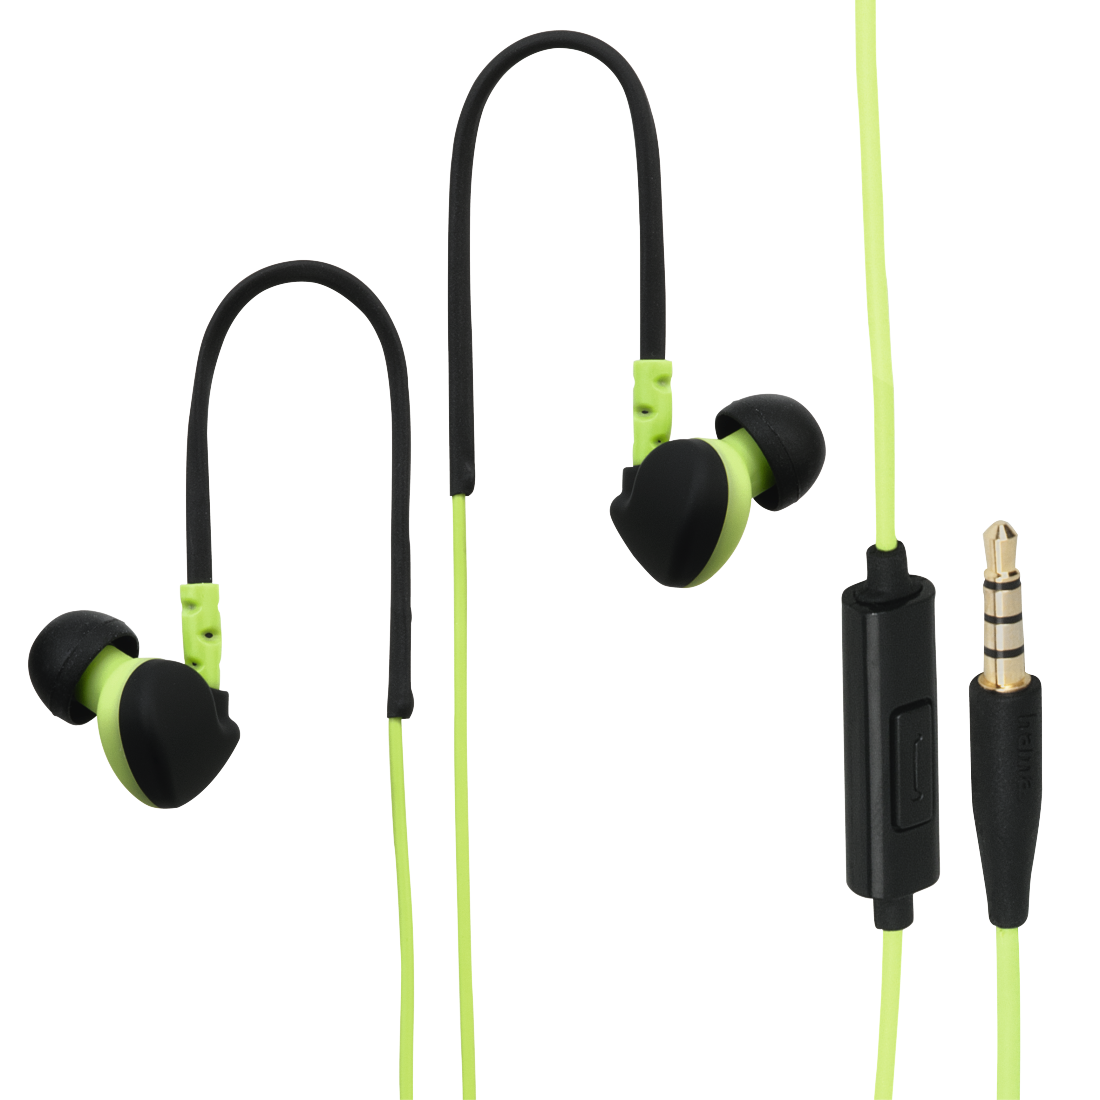 abx High-Res Image - Hama, Run Clip-On Sport Earphones, black/green